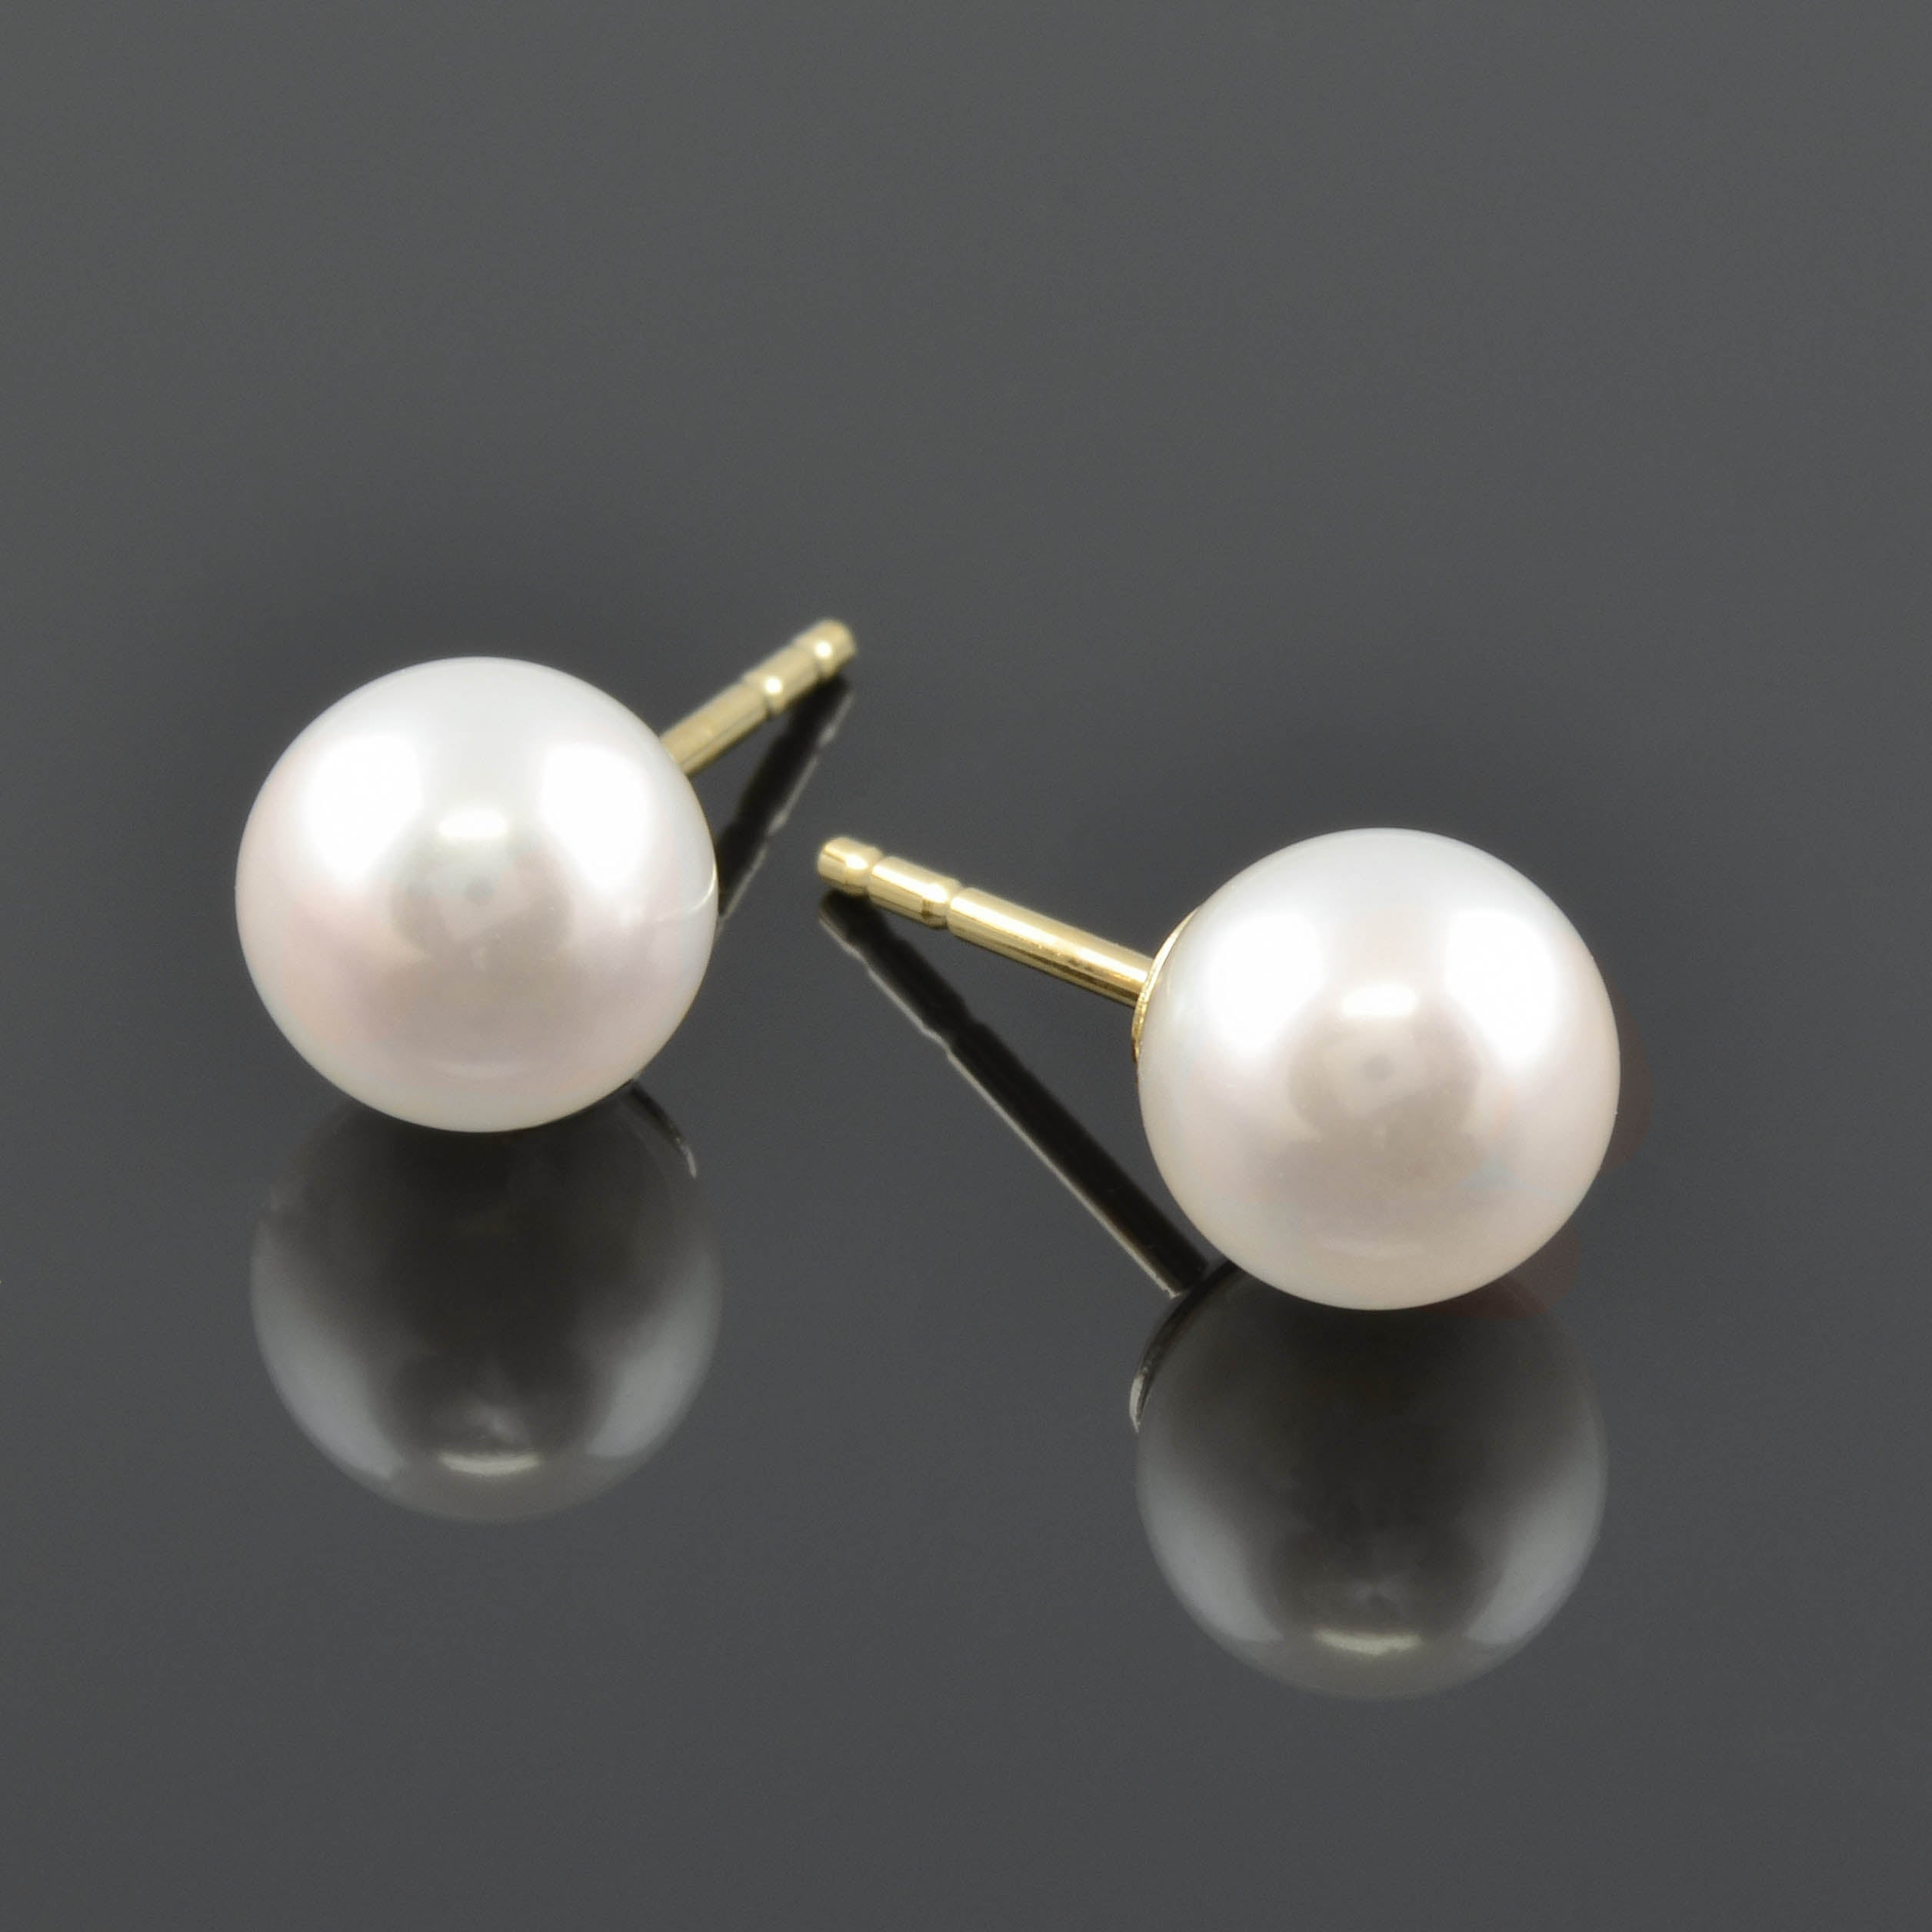 lyst logo earrings jewelry stud normal pearl gallery product women tory real s metallic drop in burch